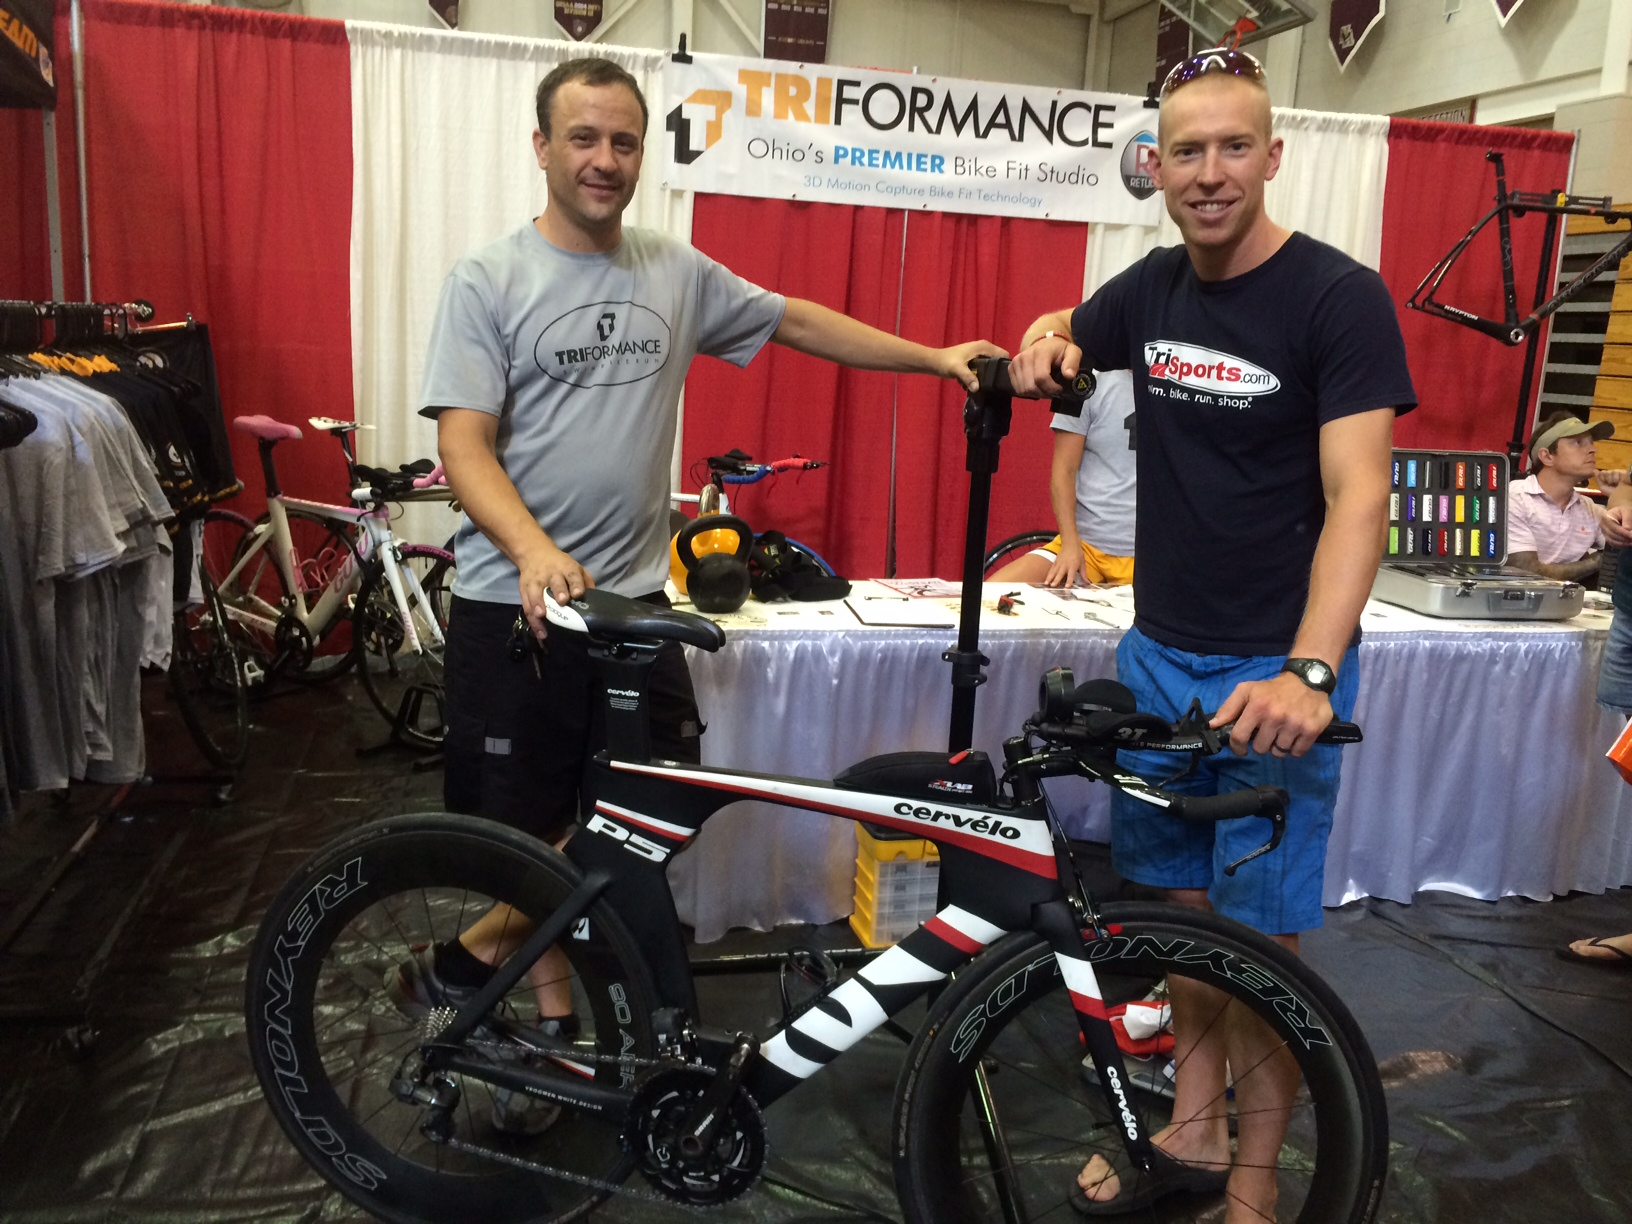 Bill and I showing off my Cervelo P5